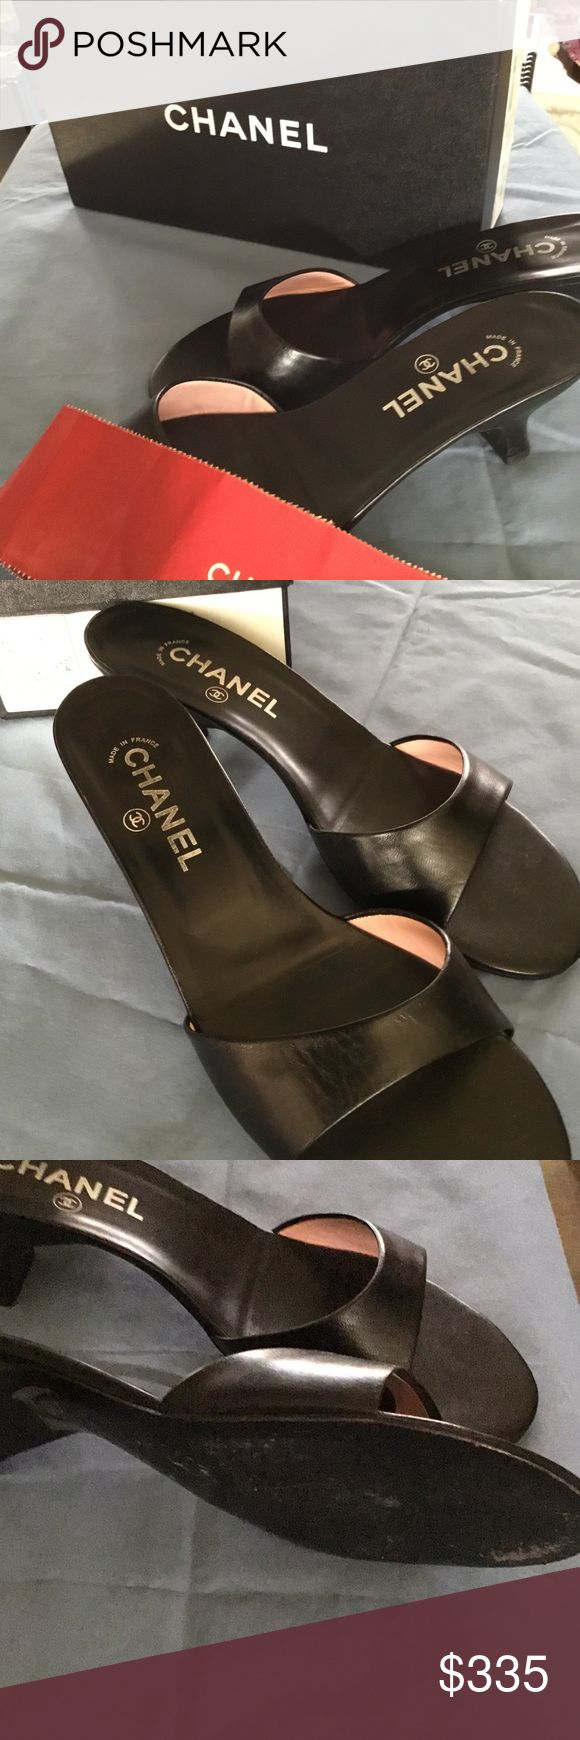 """Authentic and exquisite CHANEL Classic Mule Slide The perfect pair of shoes! For the gal who has everything... The Chanel Mule pump is the classic staple with a comfortable 2.5"""" heel and very good condition. Box is not included but come gift wrapped with gift. Make me an offer. #Chanel steal #Chanel pump #Chanel slipper #Chanel shoe #Chanel dress shoe CHANEL Shoes Sandals"""